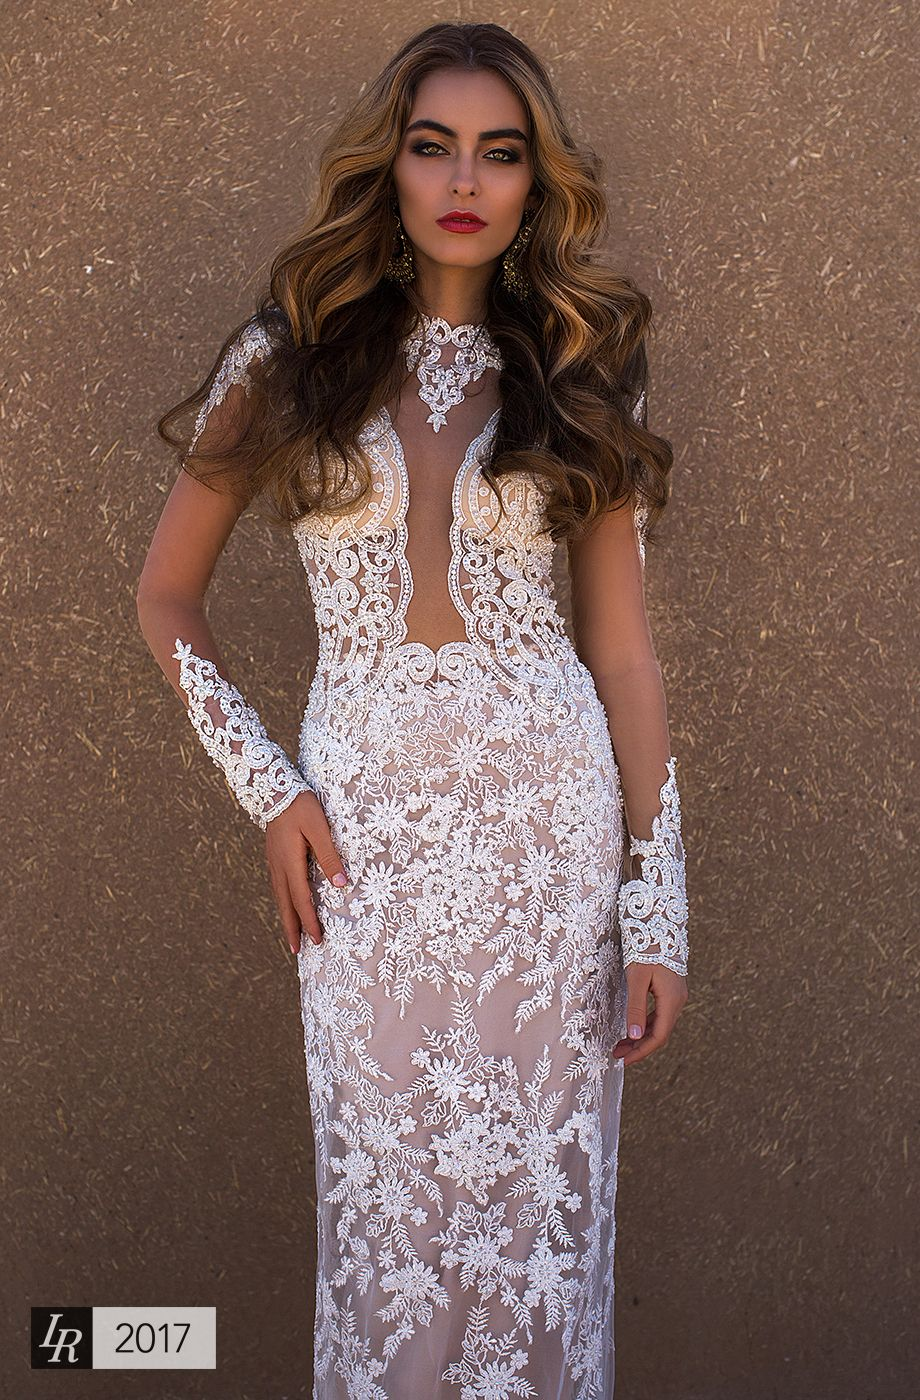 Jady Desert Mistress 2017 Luxury Extravagant Wedding Dress For The Owner Of Perfect Shapes